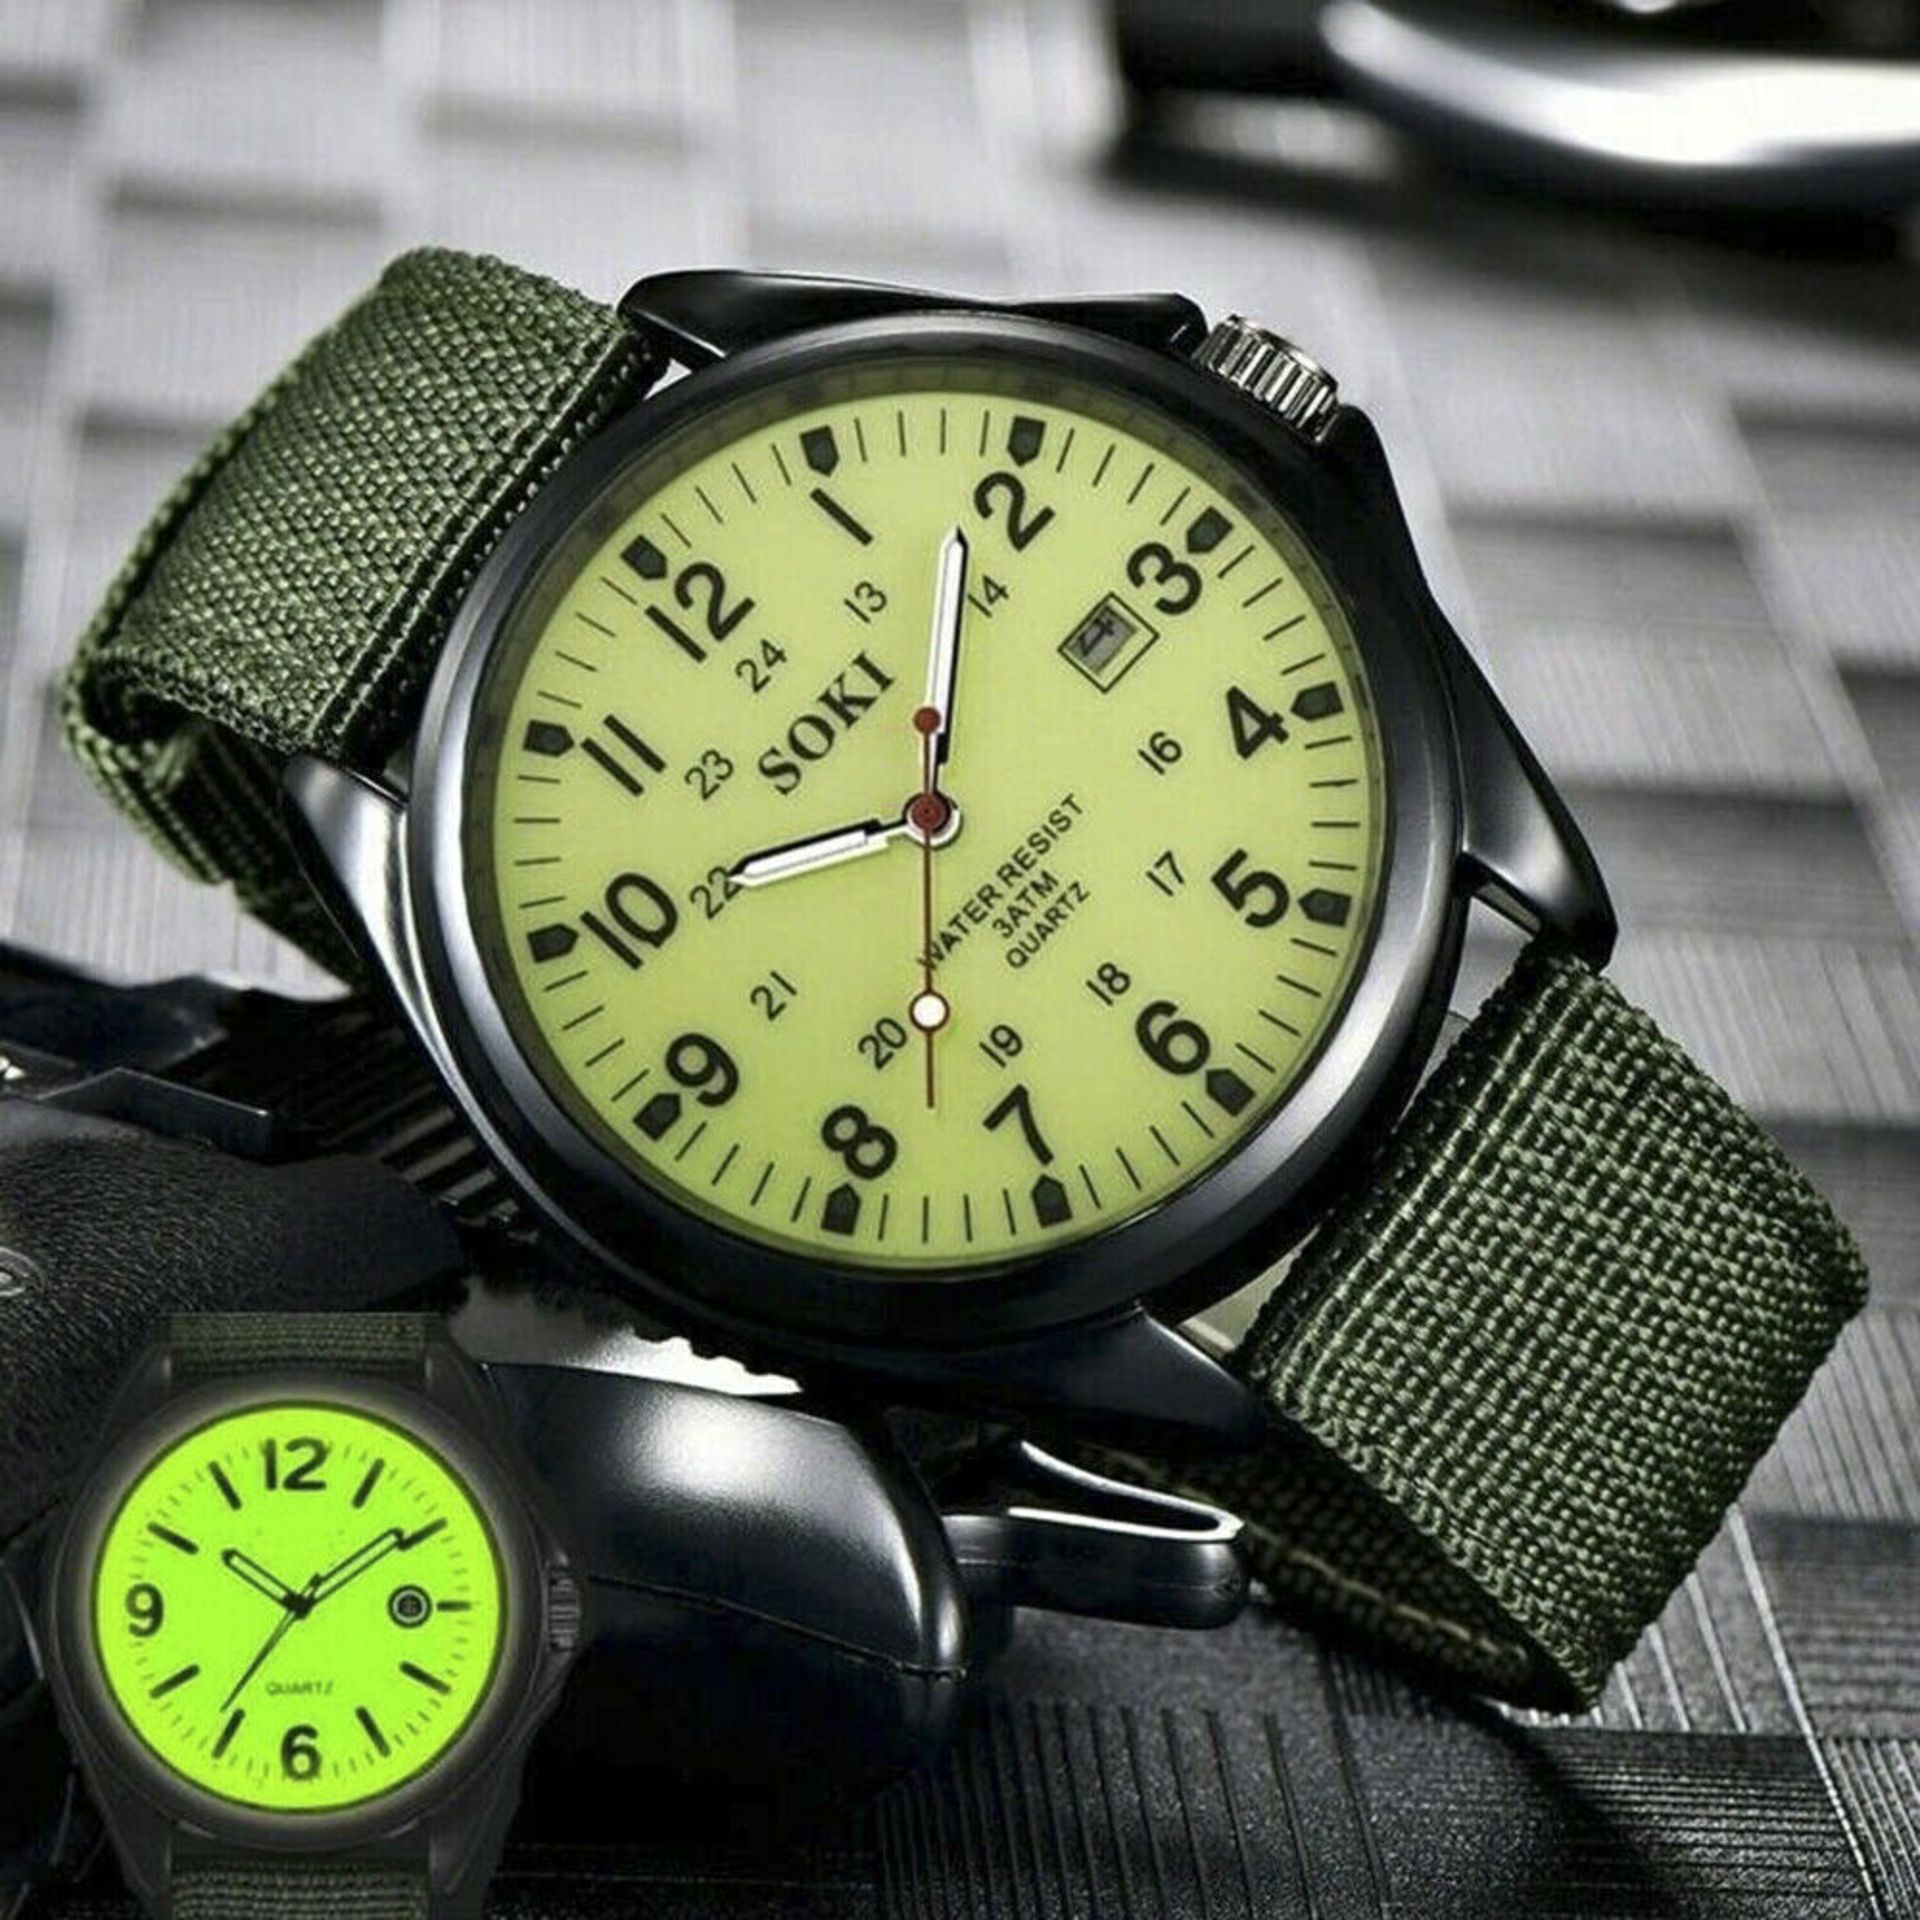 NEW & UNUSED SOKI FASHION QUARTZ LUMINOUS MILITARY INFANTRY ARMY STYLE MENS WRIST WATCH *PLUS VAT* - Image 2 of 3